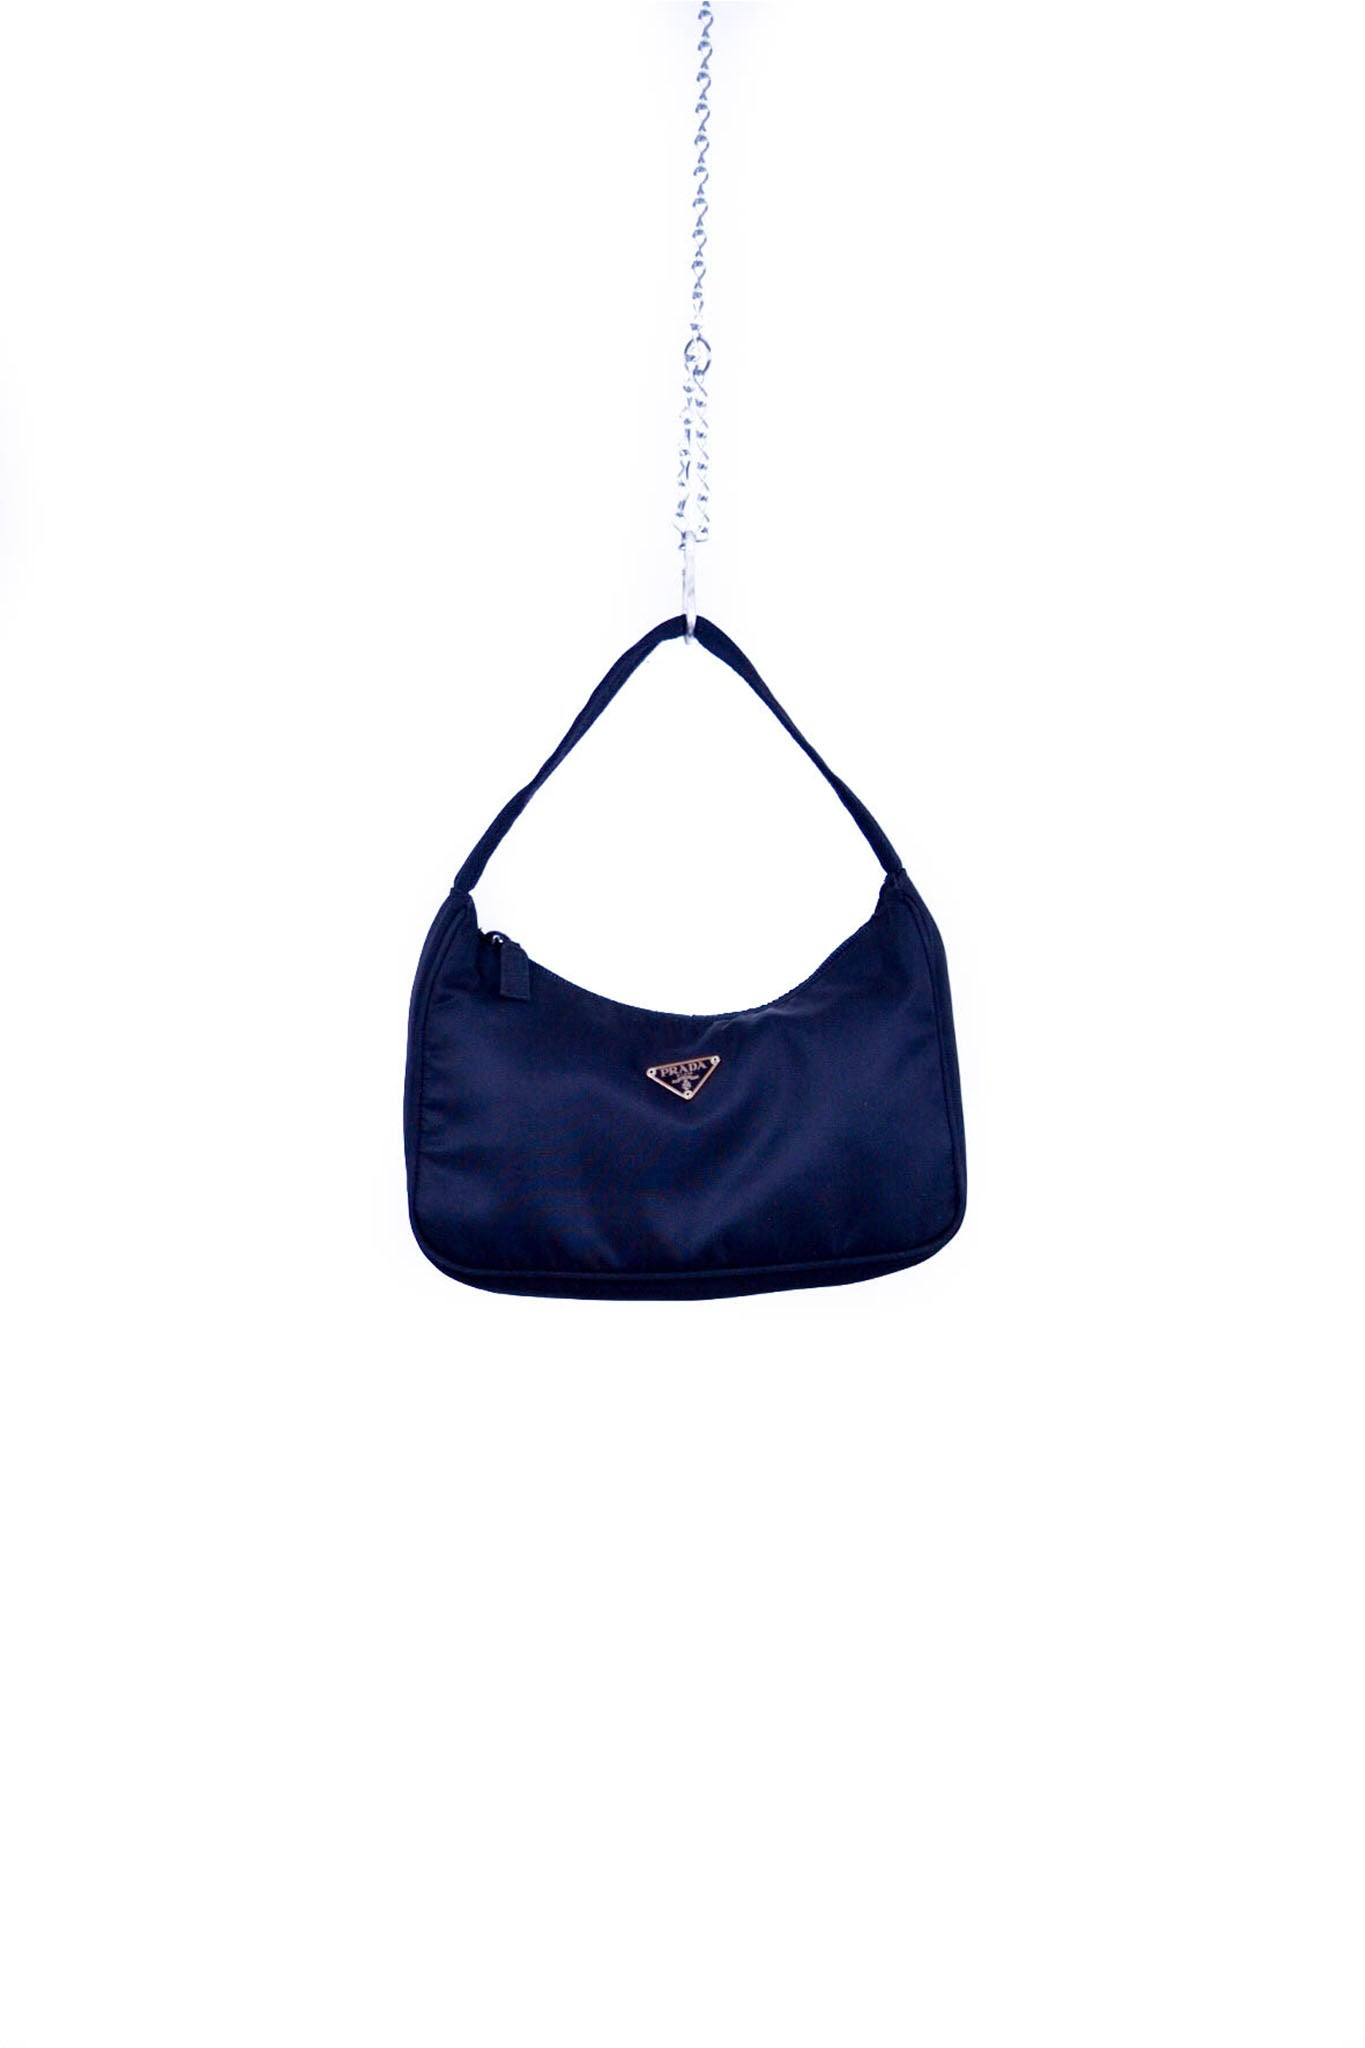 f2f16685dc84b6 Prada Tessuto Hobo Nylon Mini Bag - AVERAGE LOCAL